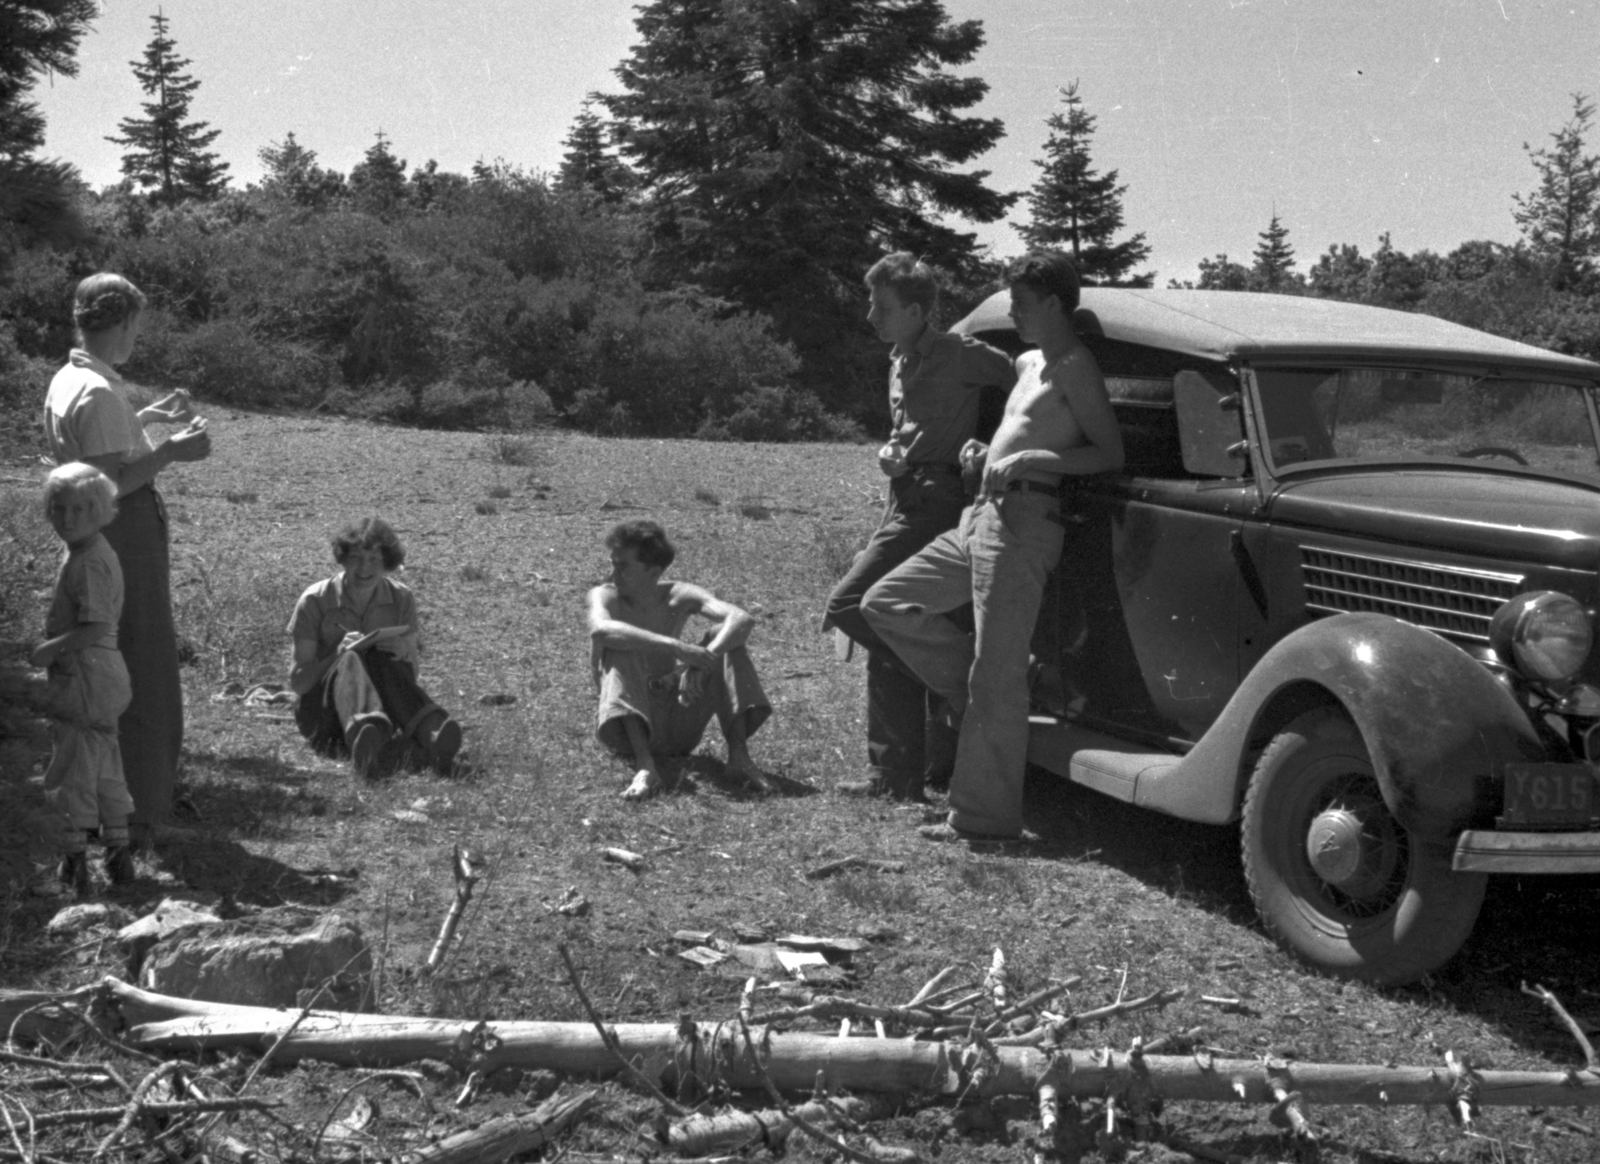 Franz N.D. Kurie (right), Arthur H. Snell (second from right) and others on Pickets Peak in Trinity County. Cookesy caption: Ford I drove out for Franz in 1936 (May). Cooksey  27-28, June 1, 1936. [Photographer: Donald Cooksey]